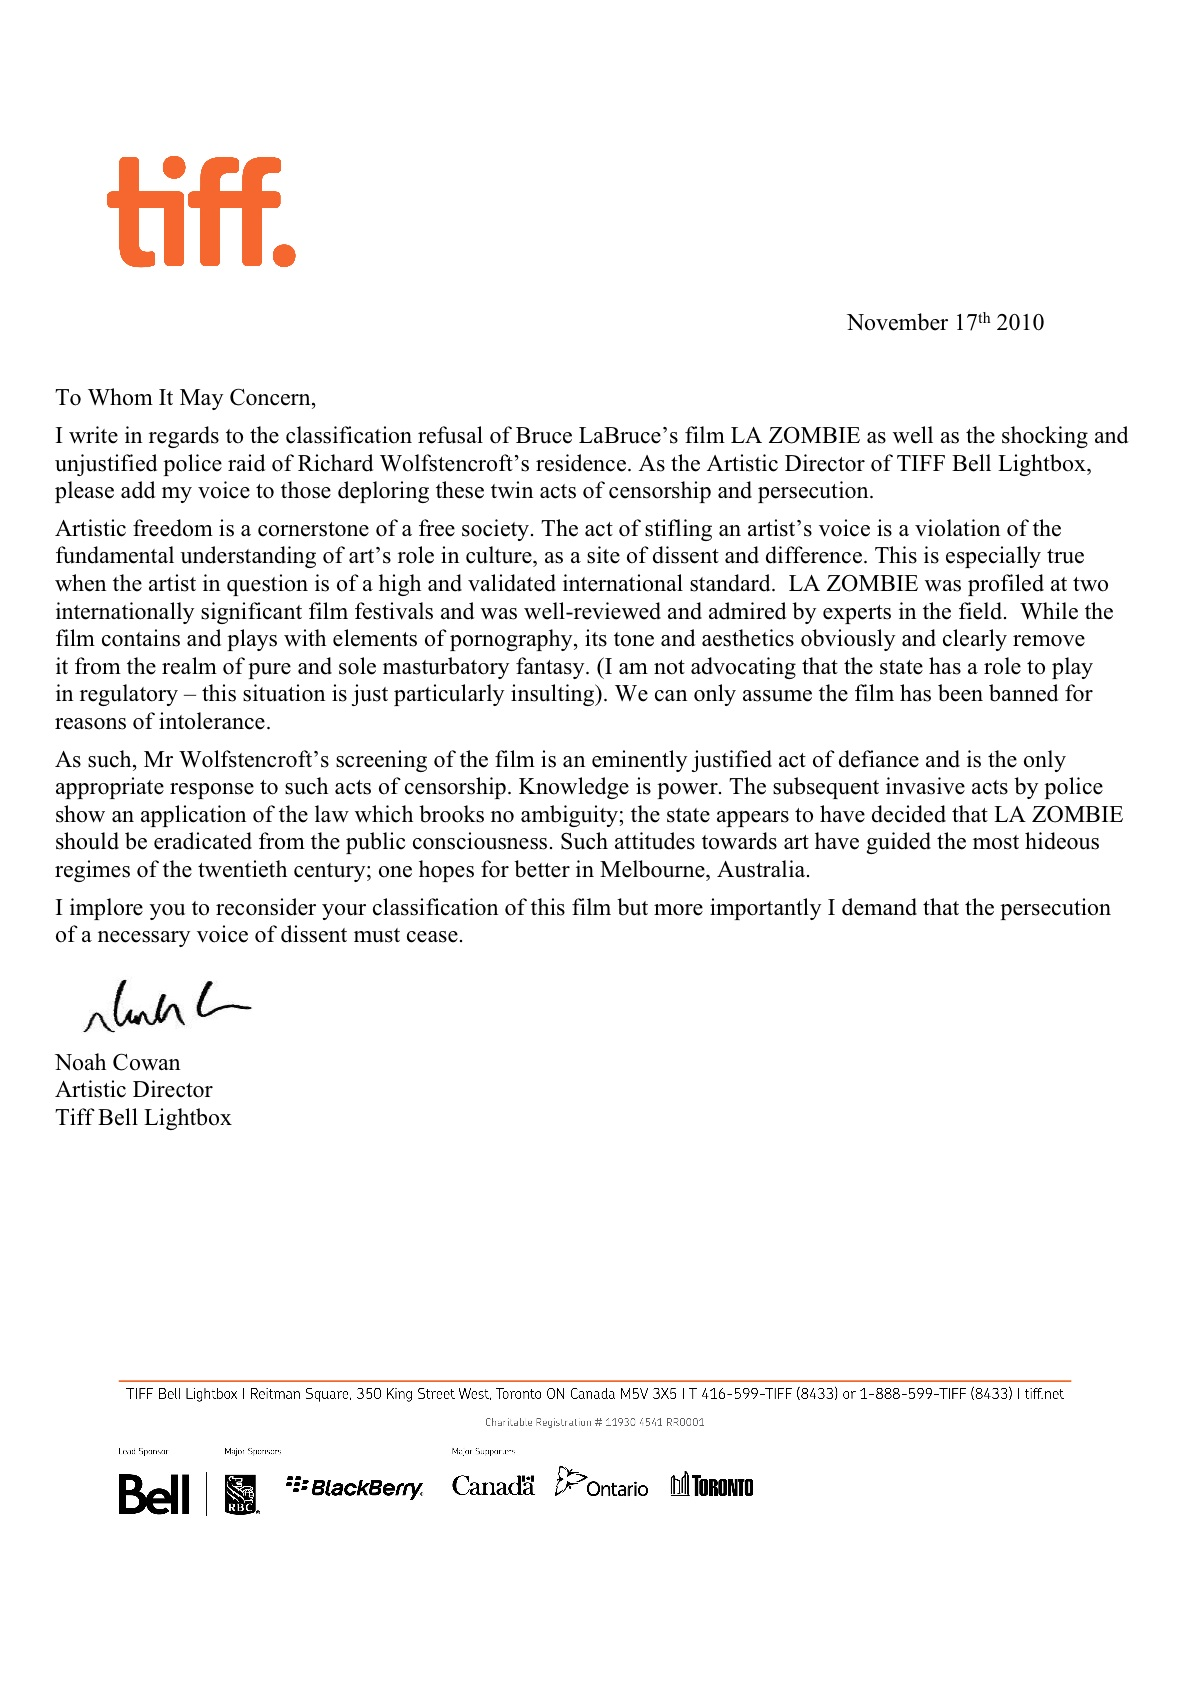 Letter of Support from Toronto International Film Festival Director Noah Cowan  Idea Fix  The Blog